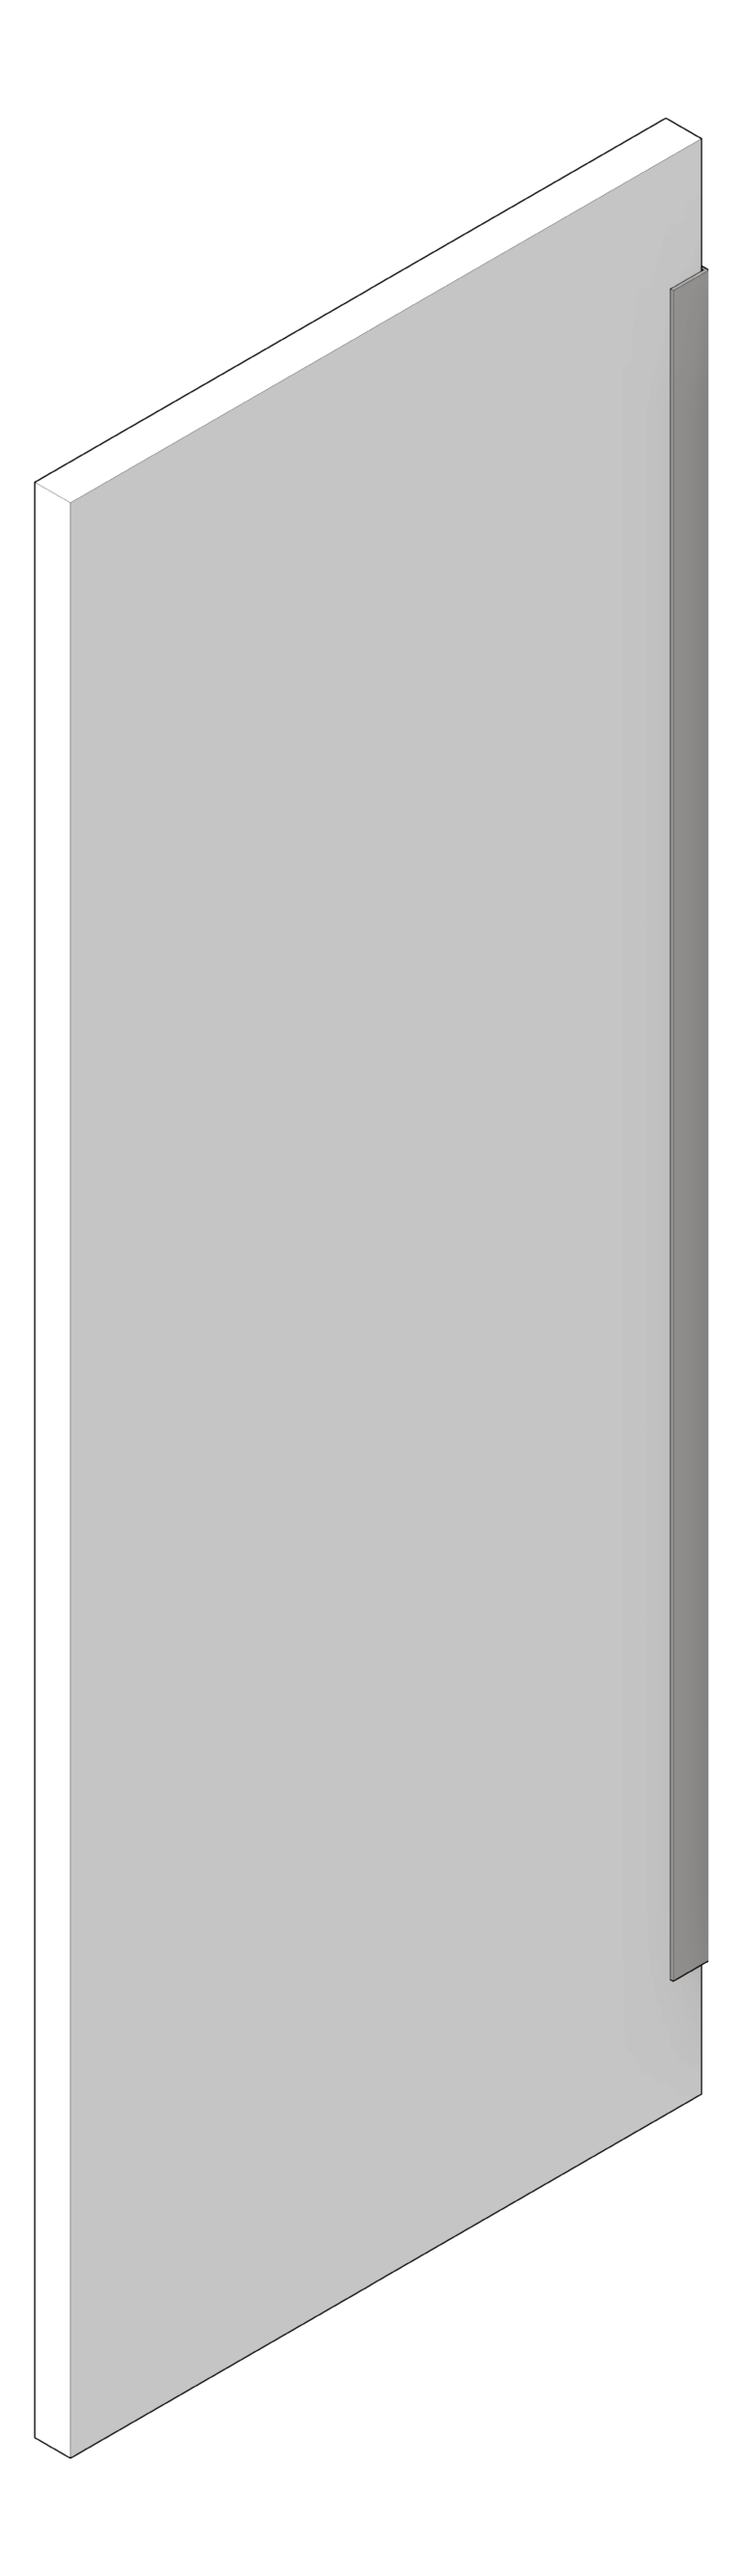 UrinalScreen_WallHung_AccuratePartitions_PowderCoatSteel_3D Shaded